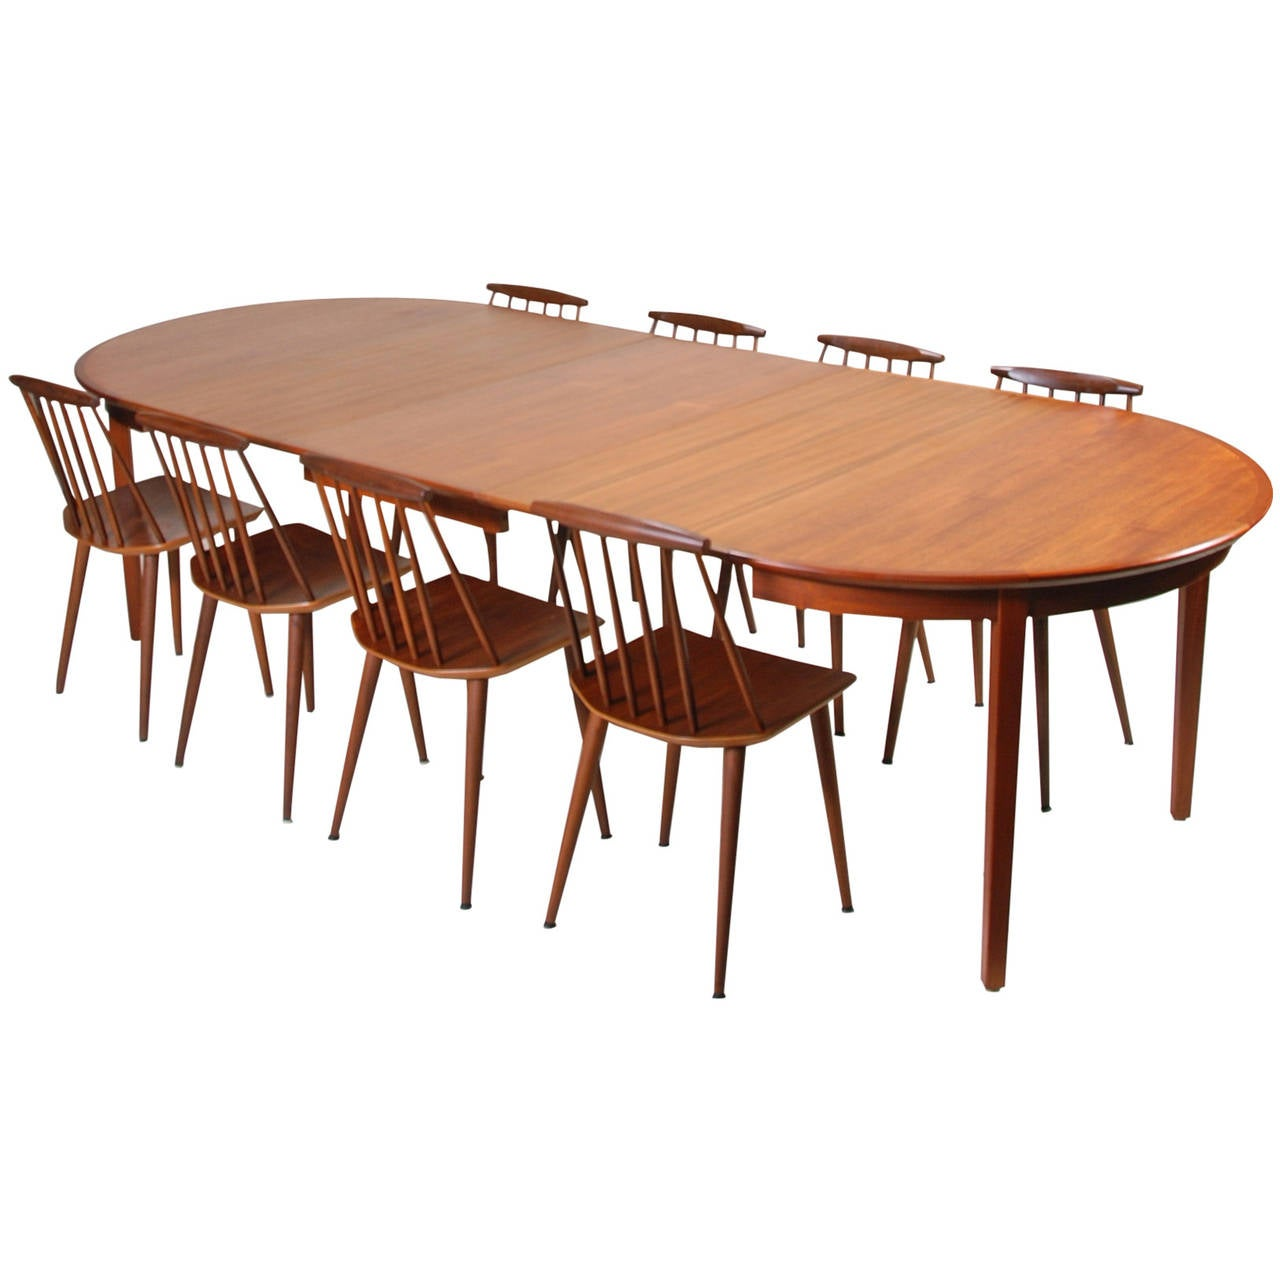 Large danish modern dining table in teak at 1stdibs for Large modern dining table